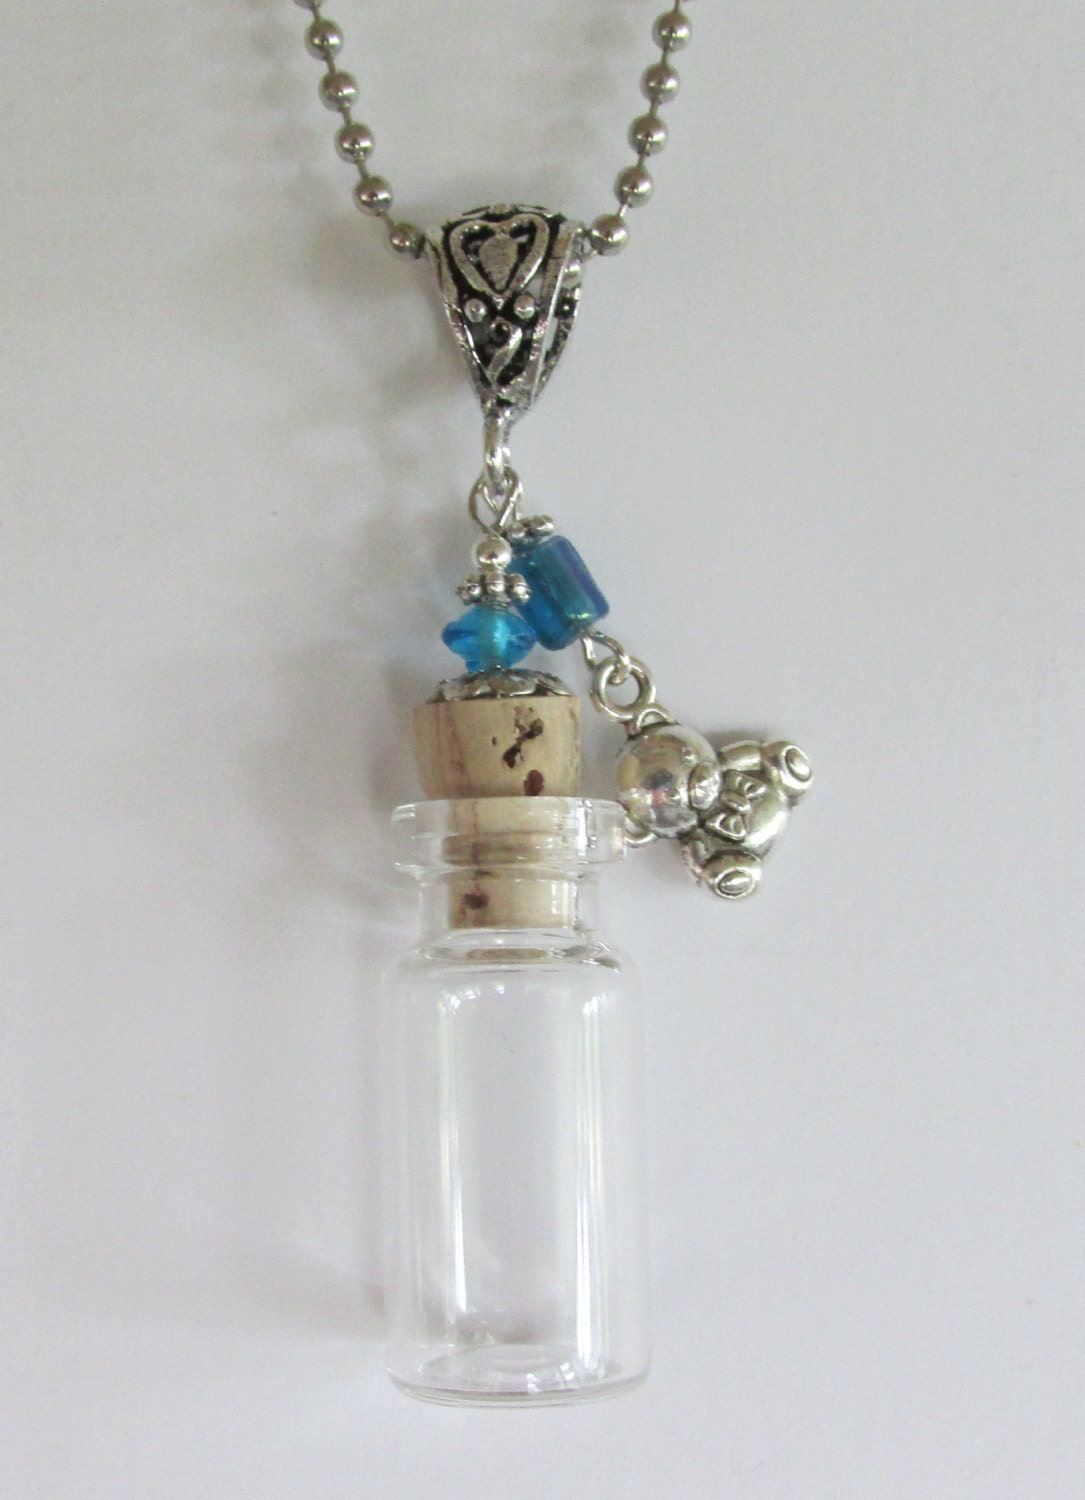 Baby 39 s first haircut necklace baby boy keepsake lock of for Baby jewelry near me